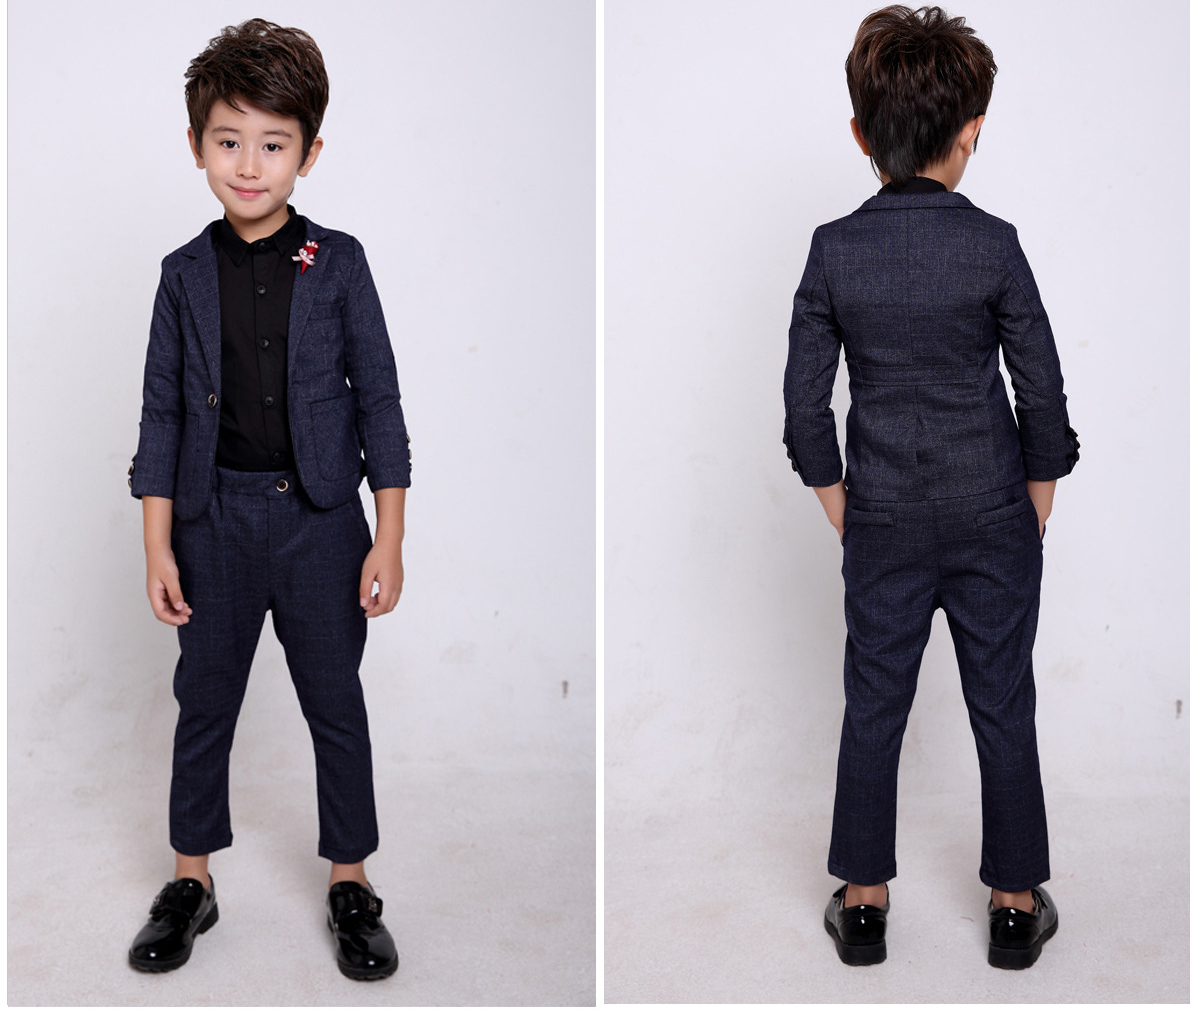 2017 new arrival fashion baby boys kids blazers boy suit for weddings prom formal  dress wedding boy suits School Birthday Party<br>